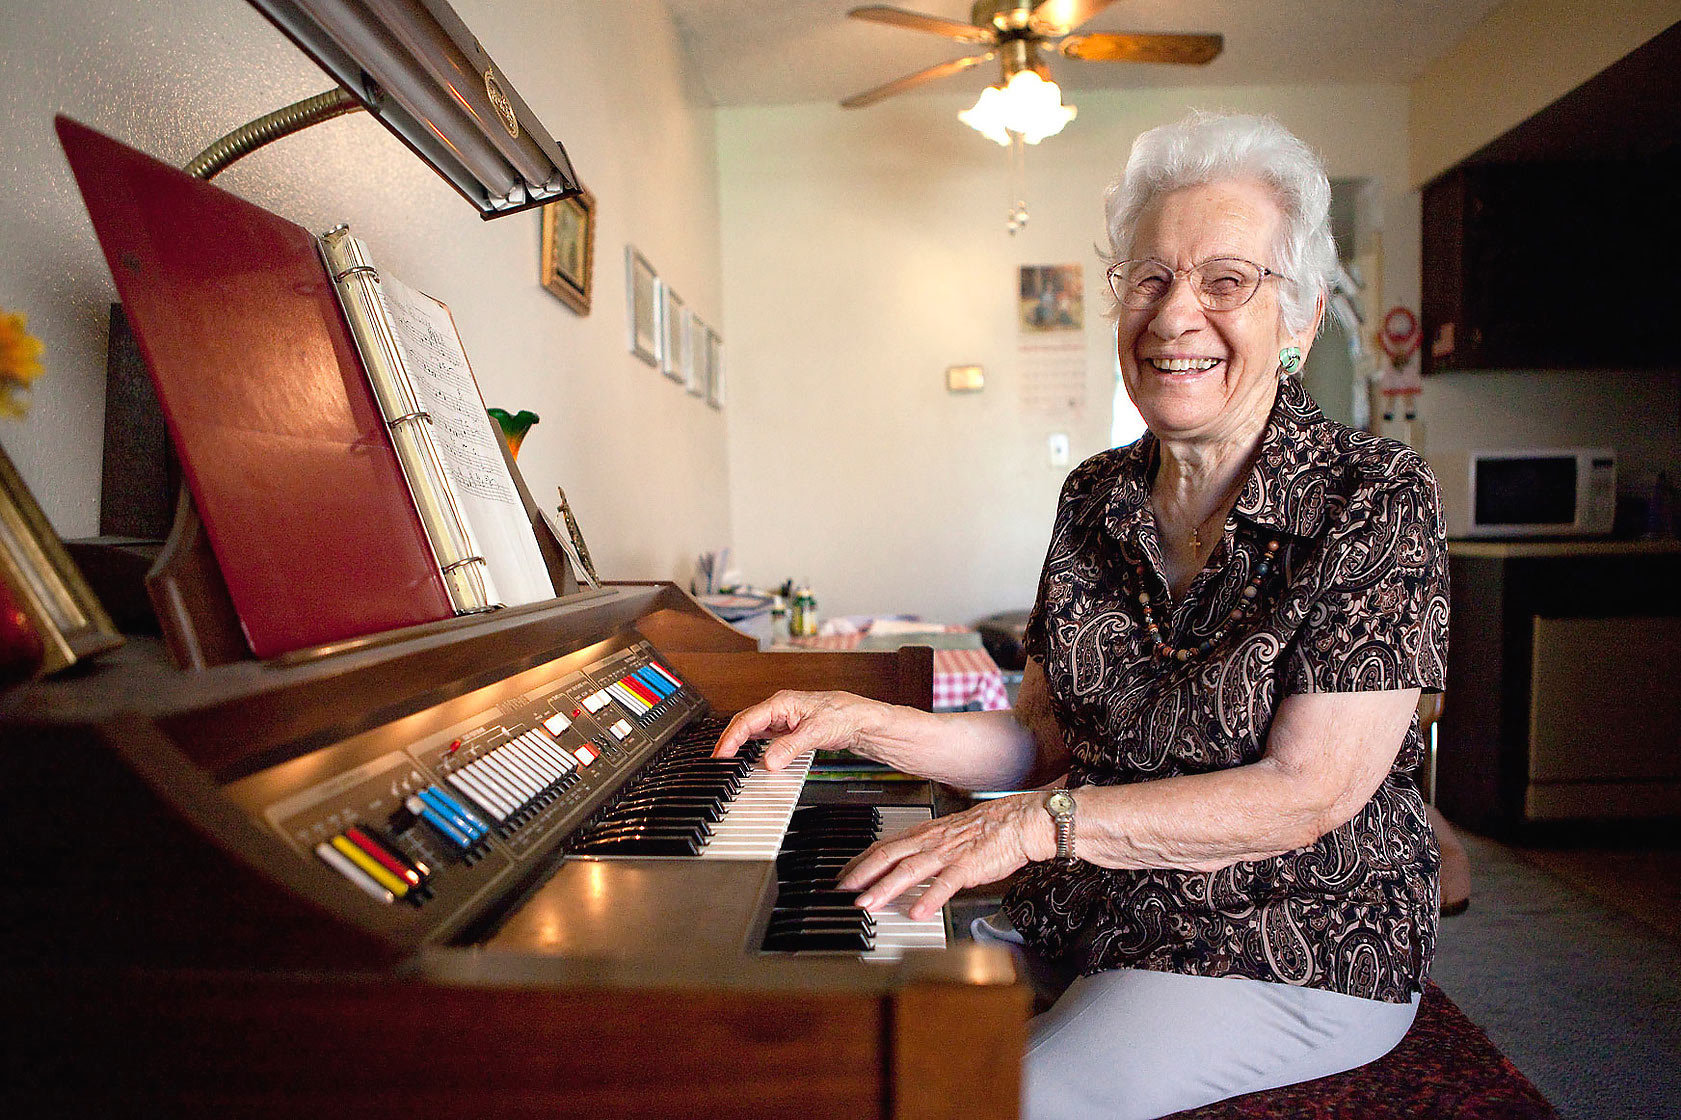 Editorial photography of grandma laughs while playing multi manual organ by Phoenix commercial photographer Jason Koster.